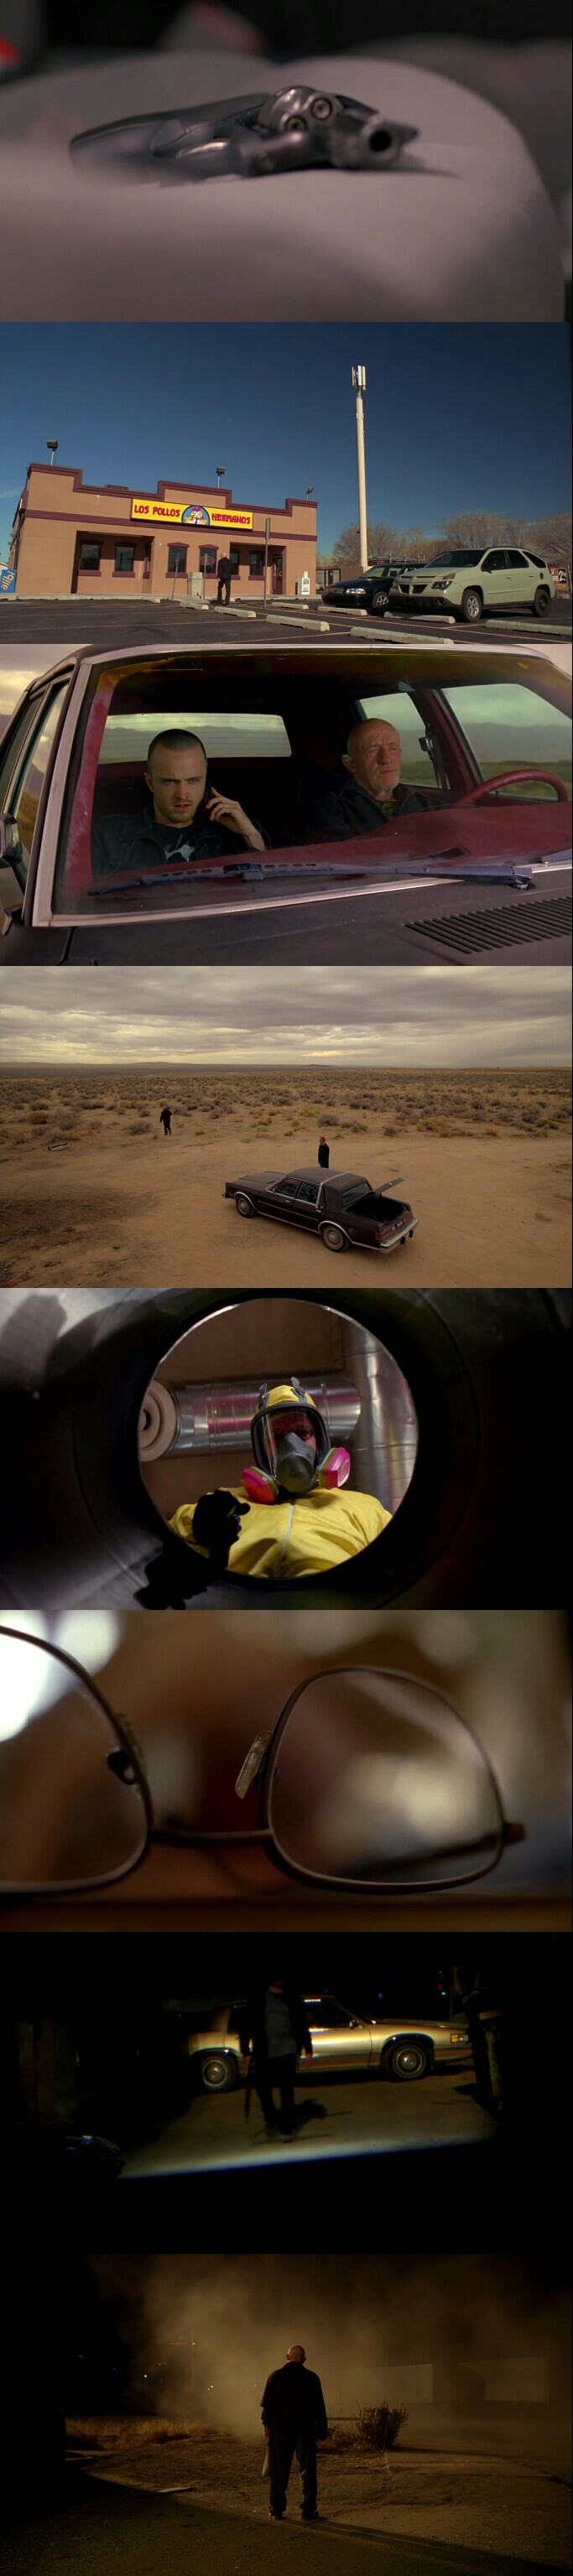 Breaking Bad (2008 - 2013) Season 4 Episode 5: Shotgun